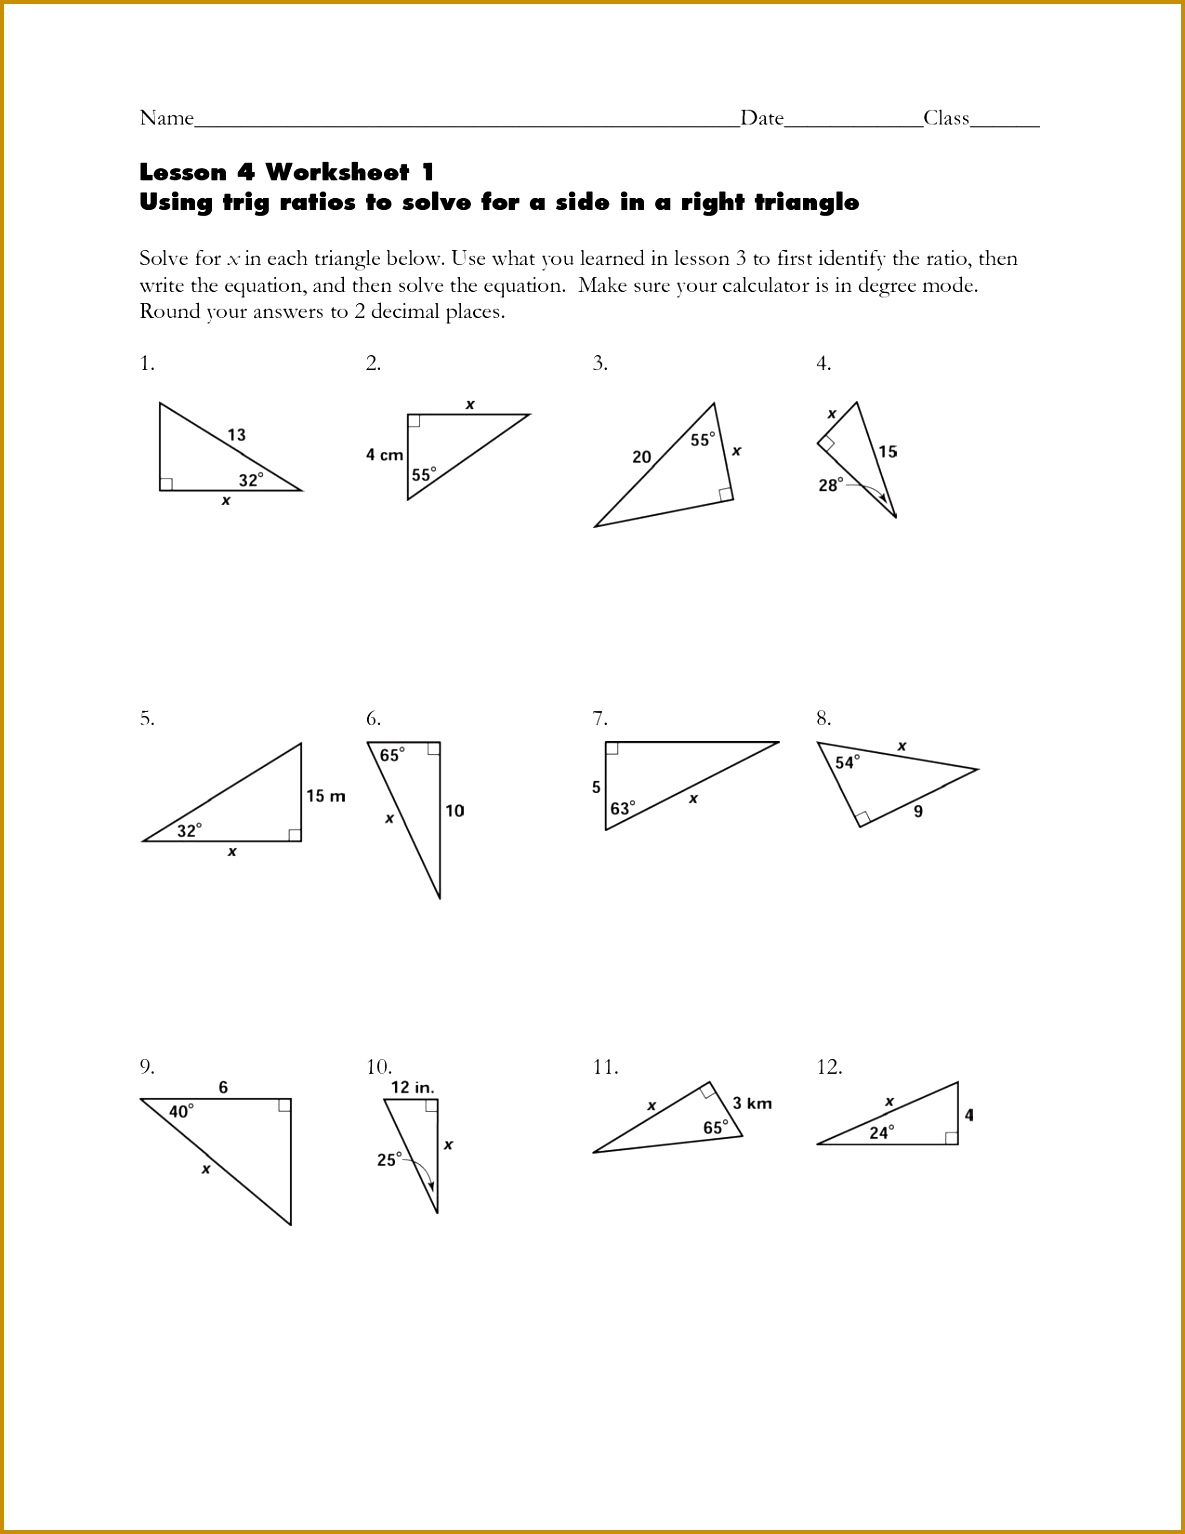 Worksheets And Trigonometry On Pinterest   Newkunci co together with  in addition SOHCAHTOA Worksheet  pdf  and Answer Key  25 scaffolded questions further sohcahtoa math – gatobengali club besides  further Grade 9 Mathematics Module 7 Triangle Trigonometry besides  together with Trigonometry Sohcahtoa Worksheet   Oaklandeffect besides  in addition Trigonometric Ratios Worksheet Math Trigonometric Ratios Worksheet together with Applying Trigonometric Ratios   Texas Gateway in addition Trigonometry Revision   Maths Made Easy Resources in addition 30 Beautiful Trigonometric Ratios Worksheet Answers Pictures moreover Solving Right Triangles Worksheet Beautiful Worksheet Trigonometric together with SohCahToa  Definition   Ex le Problems   Video   Lesson Transcript moreover Trigonometric Ratios Worksheets   sin  cos  tan  csc  sec  cot. on worksheet trigonometric ratios sohcahtoa answers